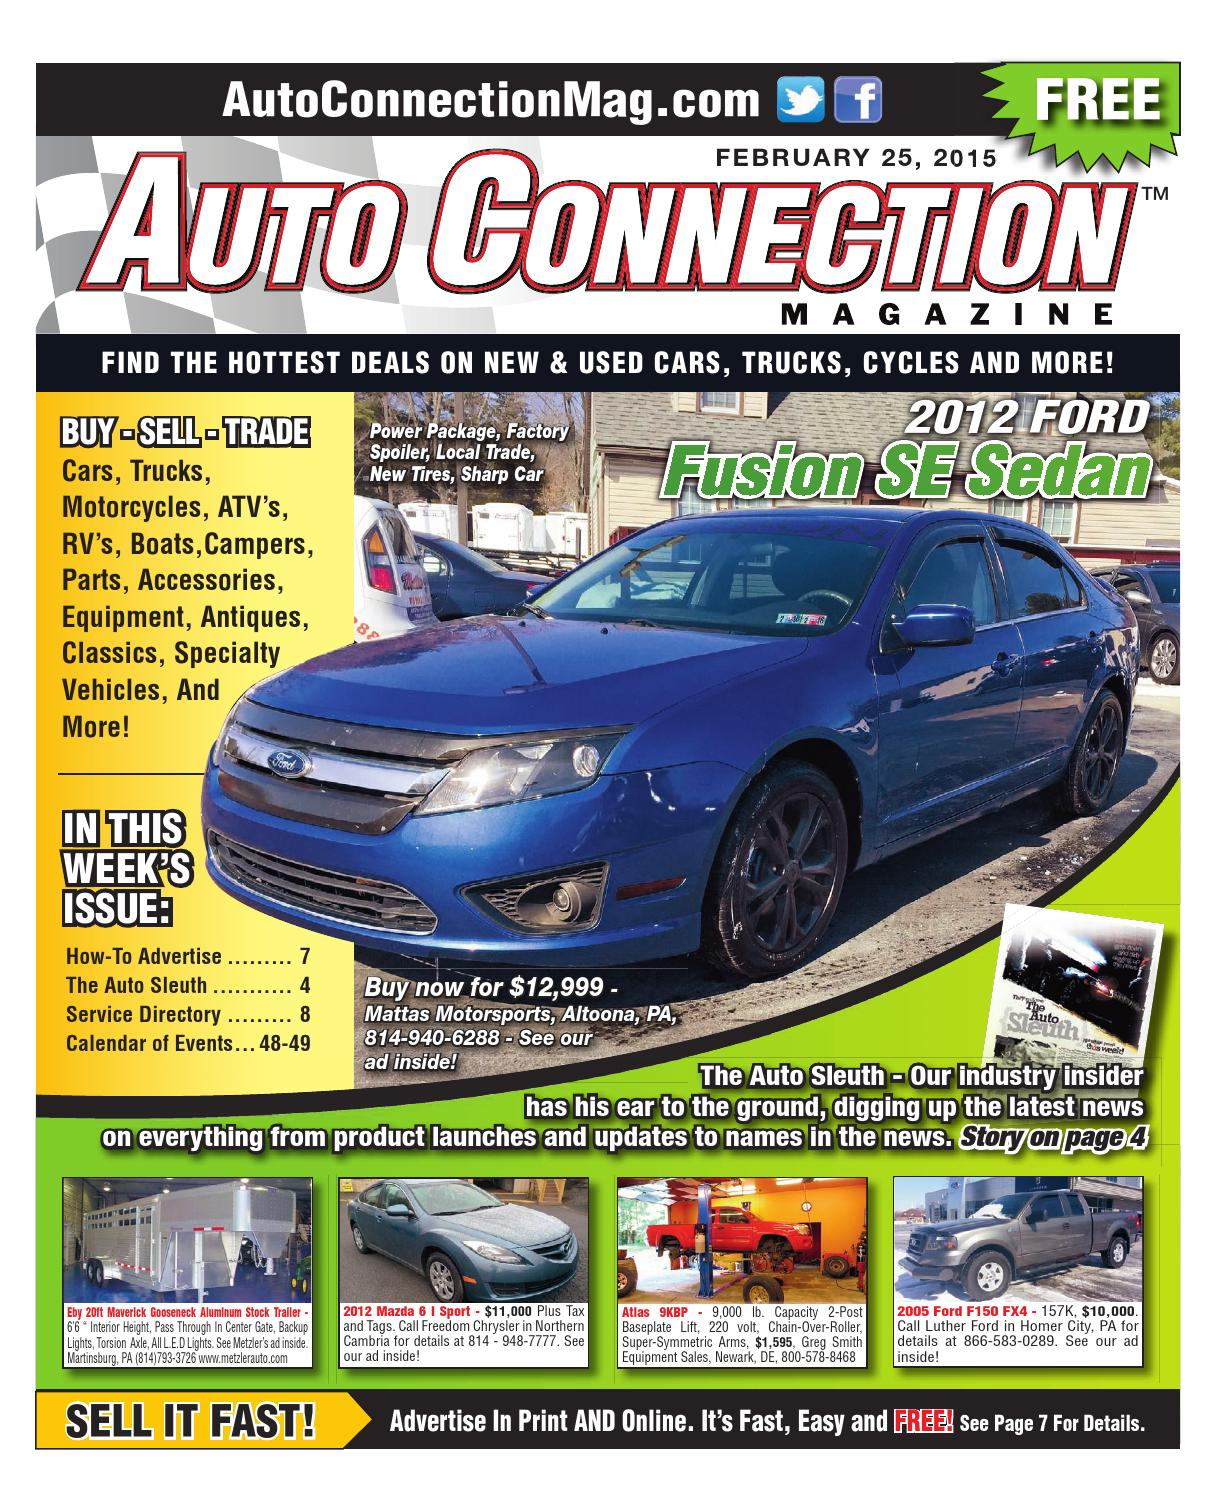 Chevrolet Cruze Repair Manual: Rocker Outer Panel Sectioning (MIG-Brazing)